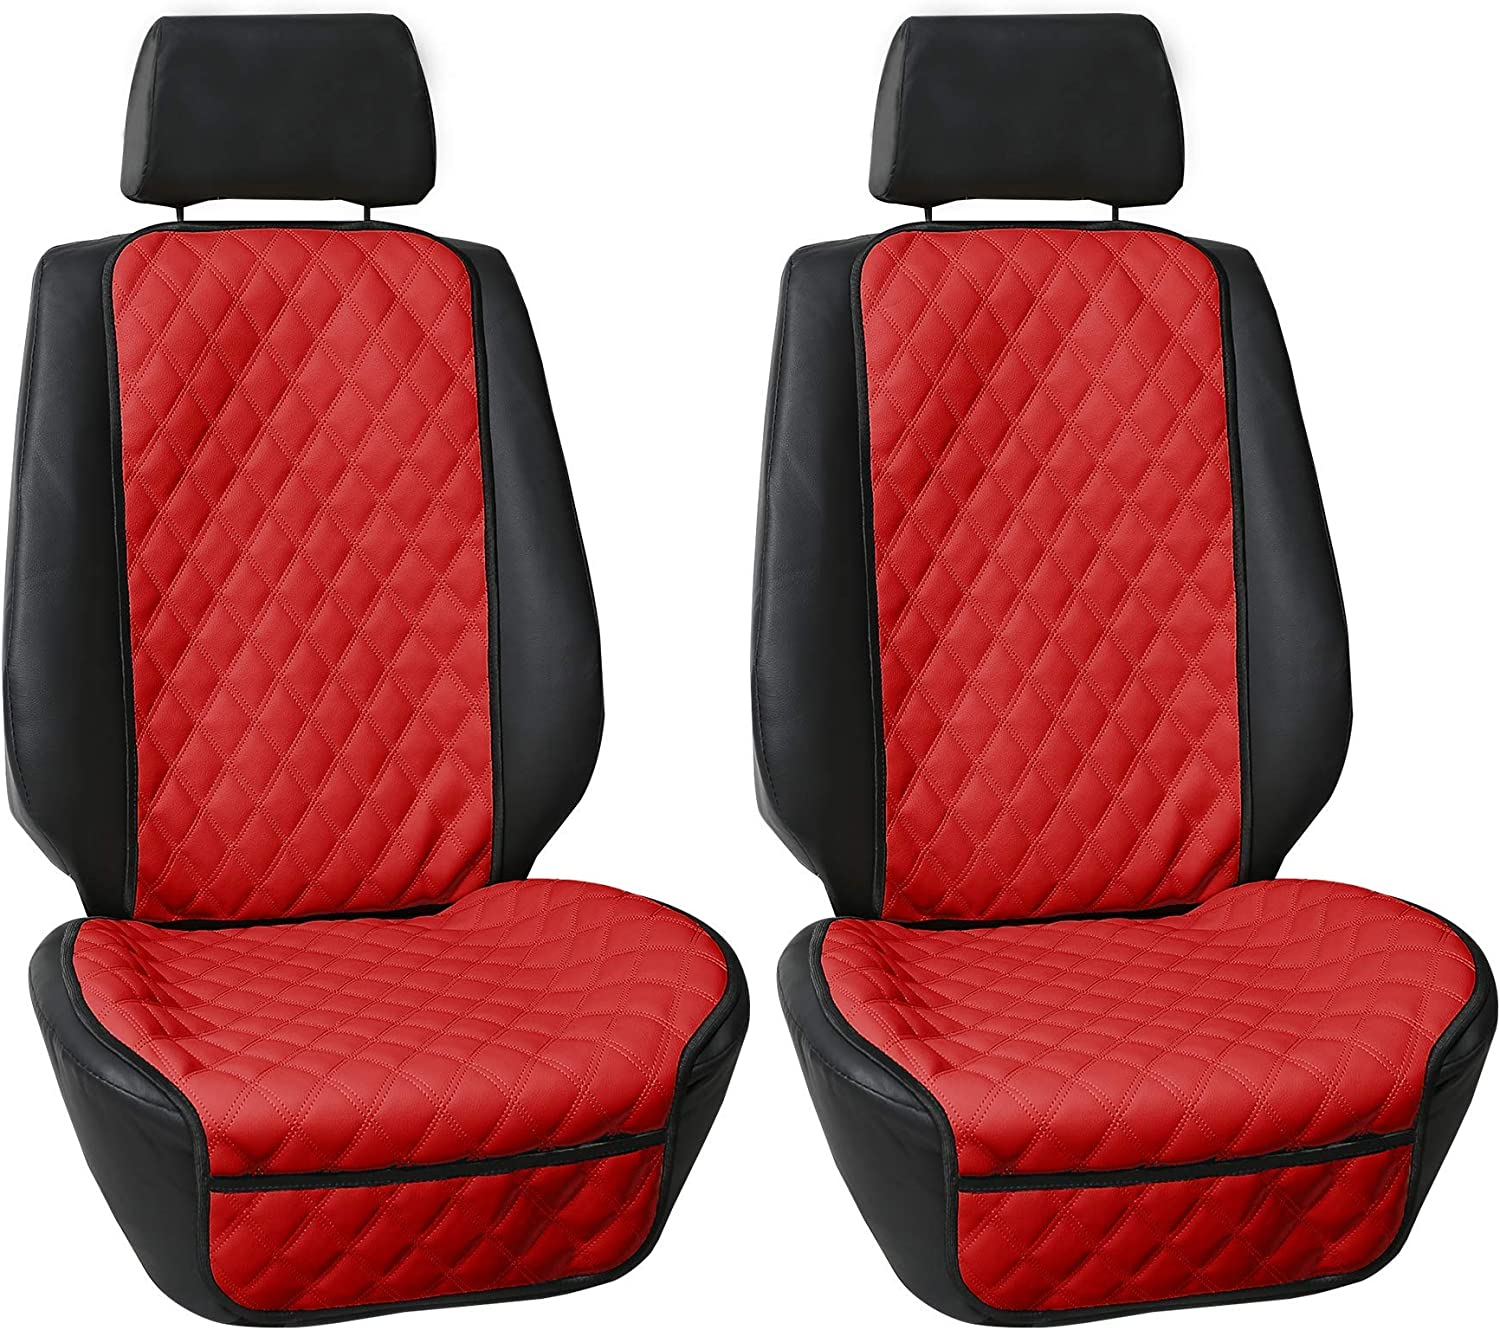 Font Set with Gift Universal Fit for Cars Black FH Group FH1018 Faux Leather Seat Protectors Trucks /& SUVs